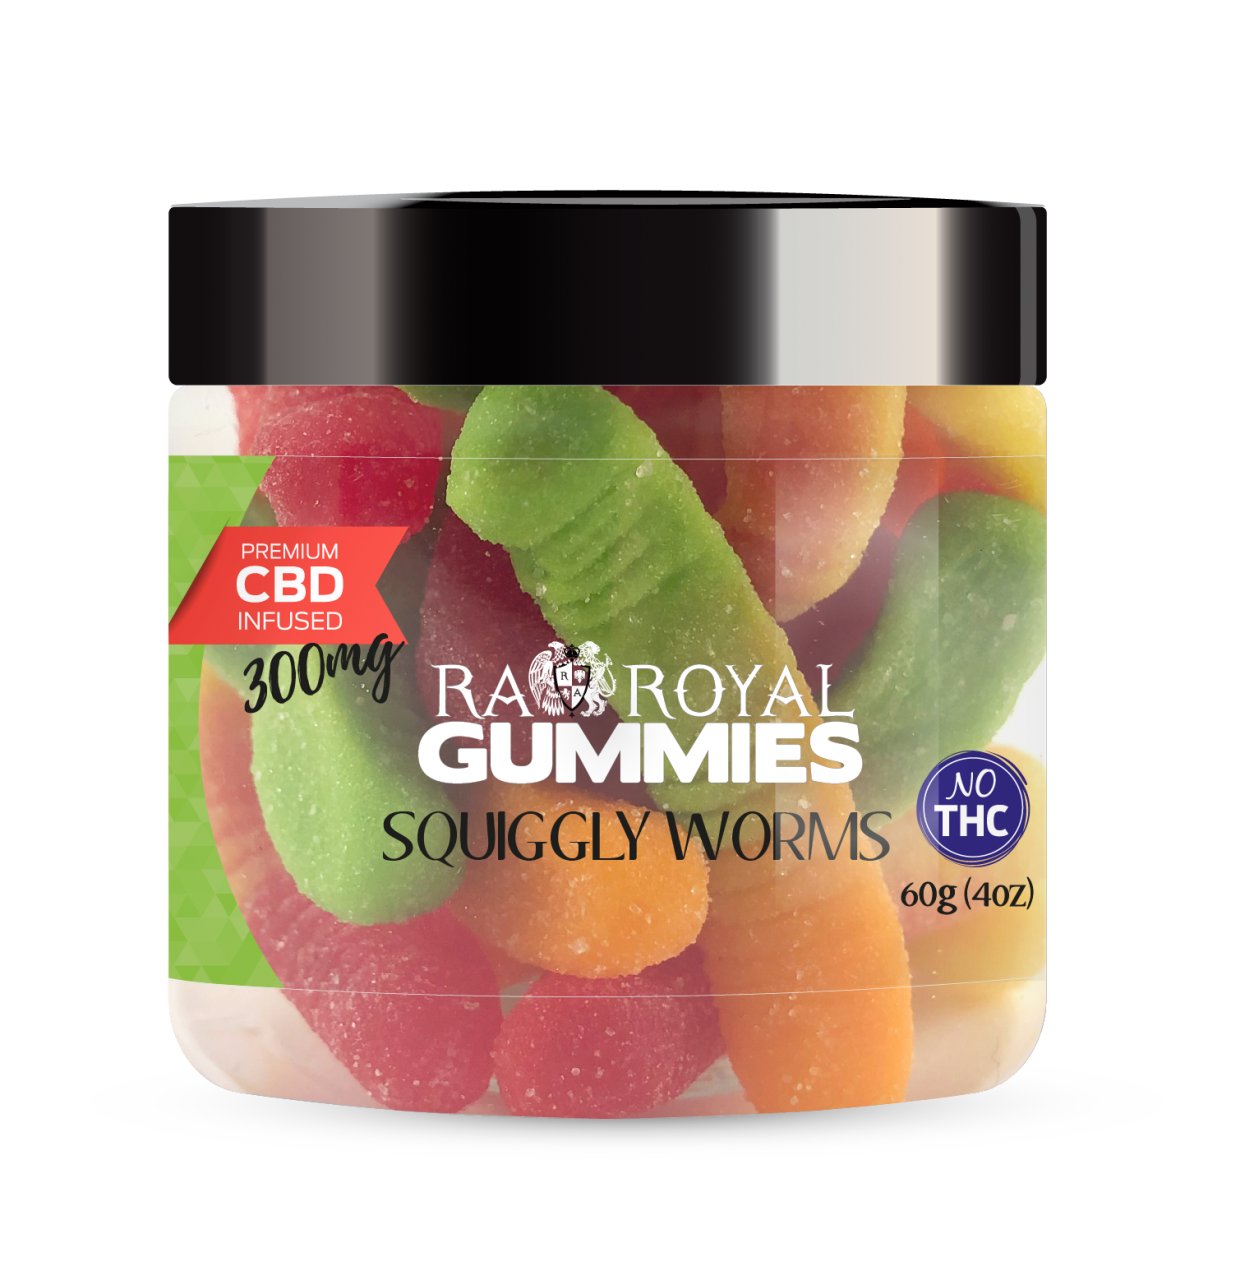 R.A. Royal Gummies – 300MG CBD Infused Squiggly Worms